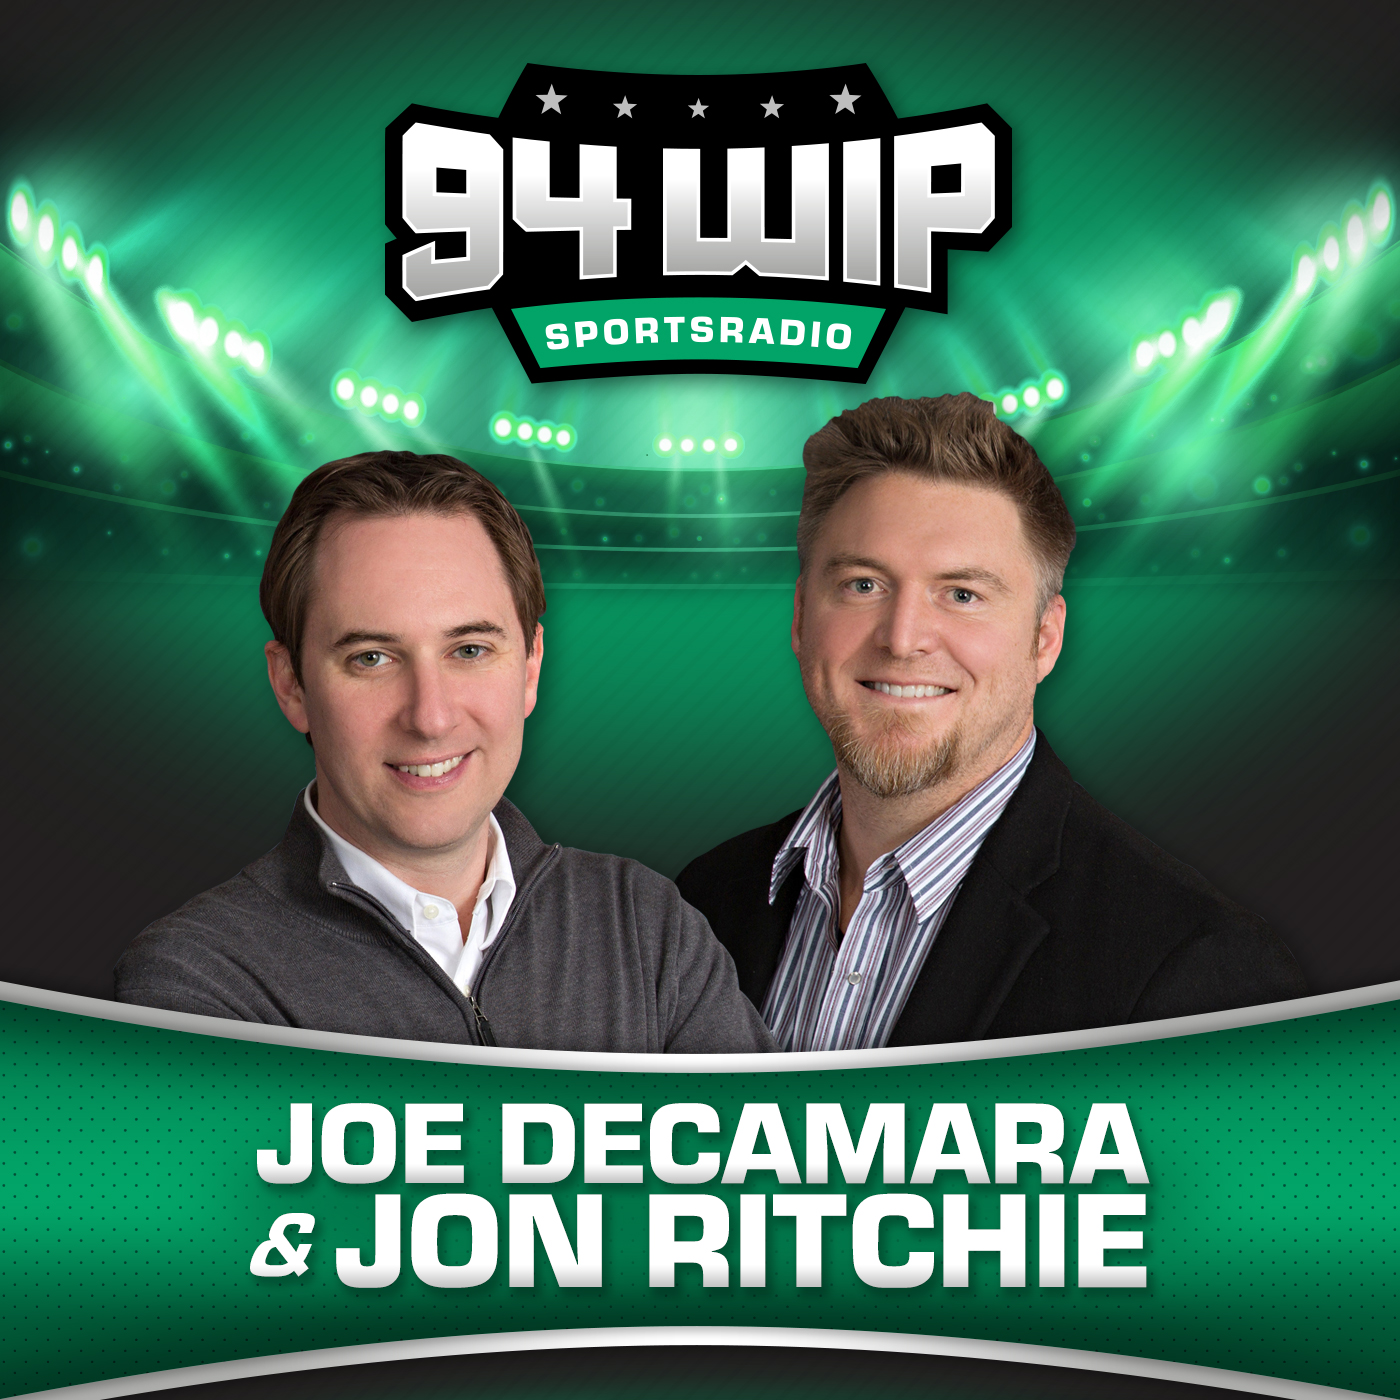 Joe DeCamara & Jon Ritchie